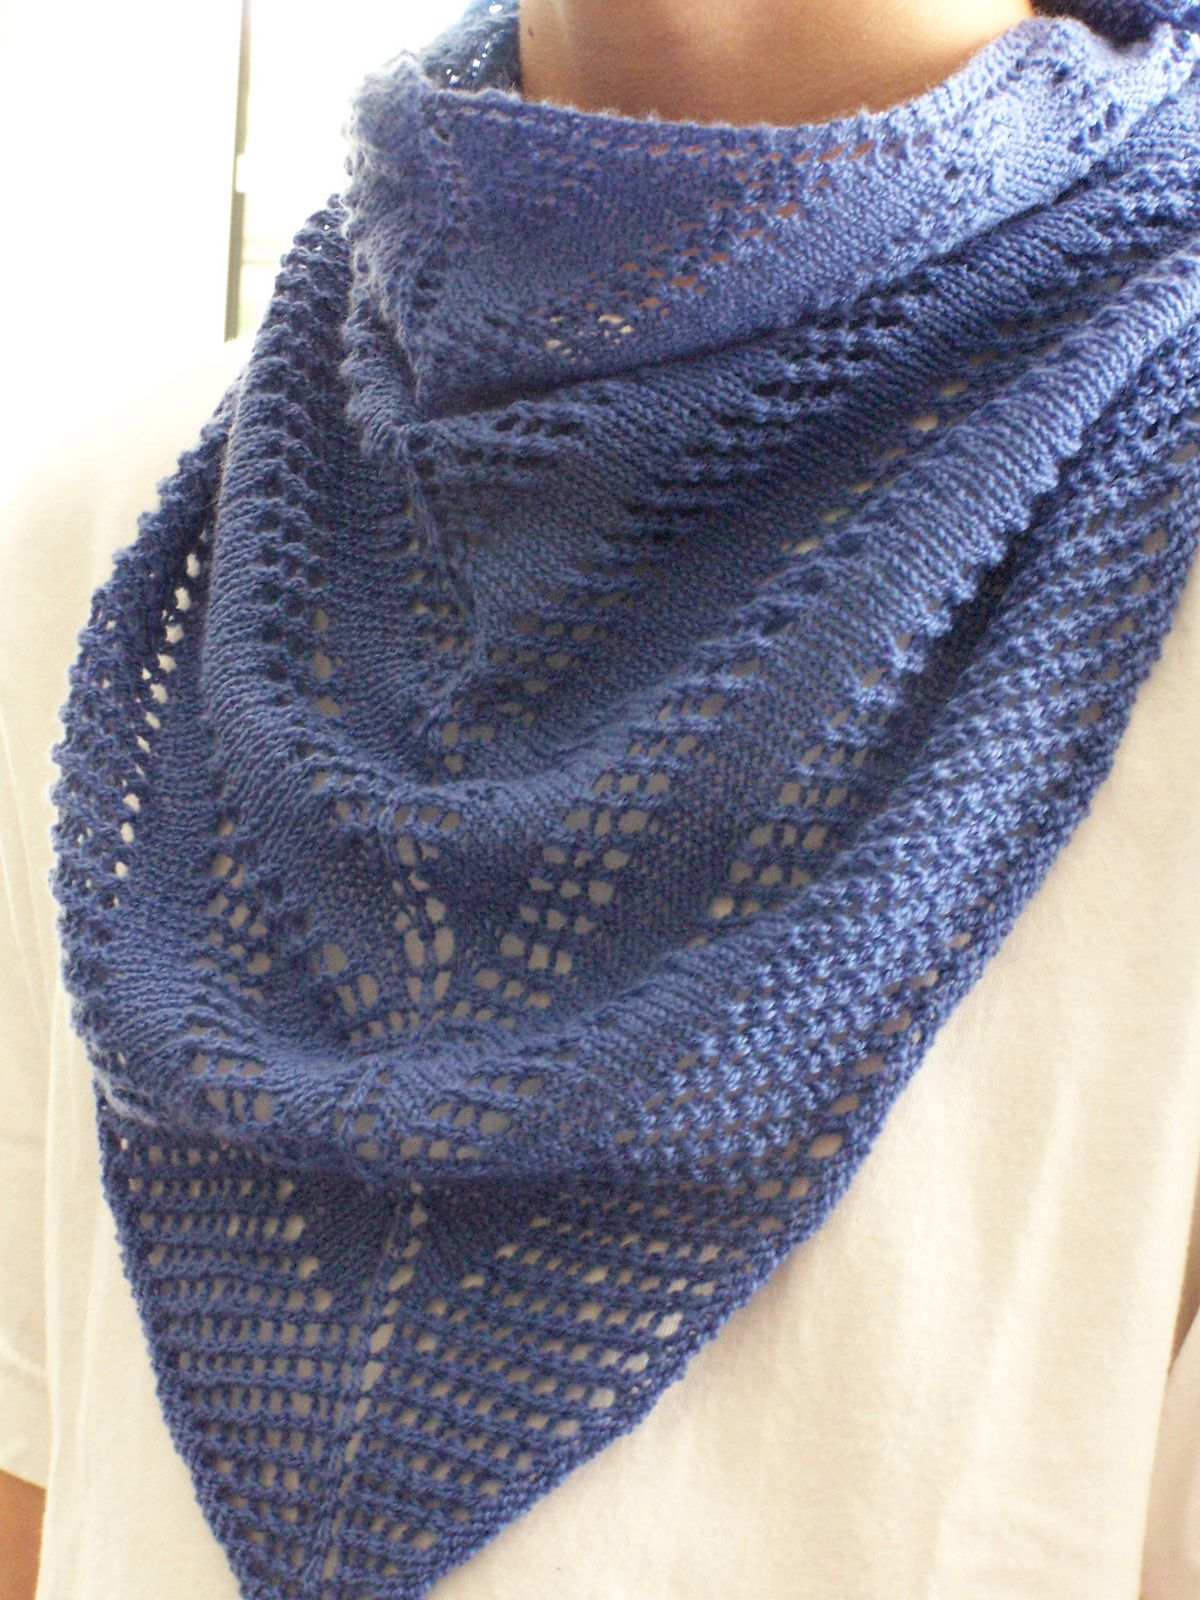 Easy Peazy Scarf/Shawlette By Megan Delorme - Free Knitted Pattern ...